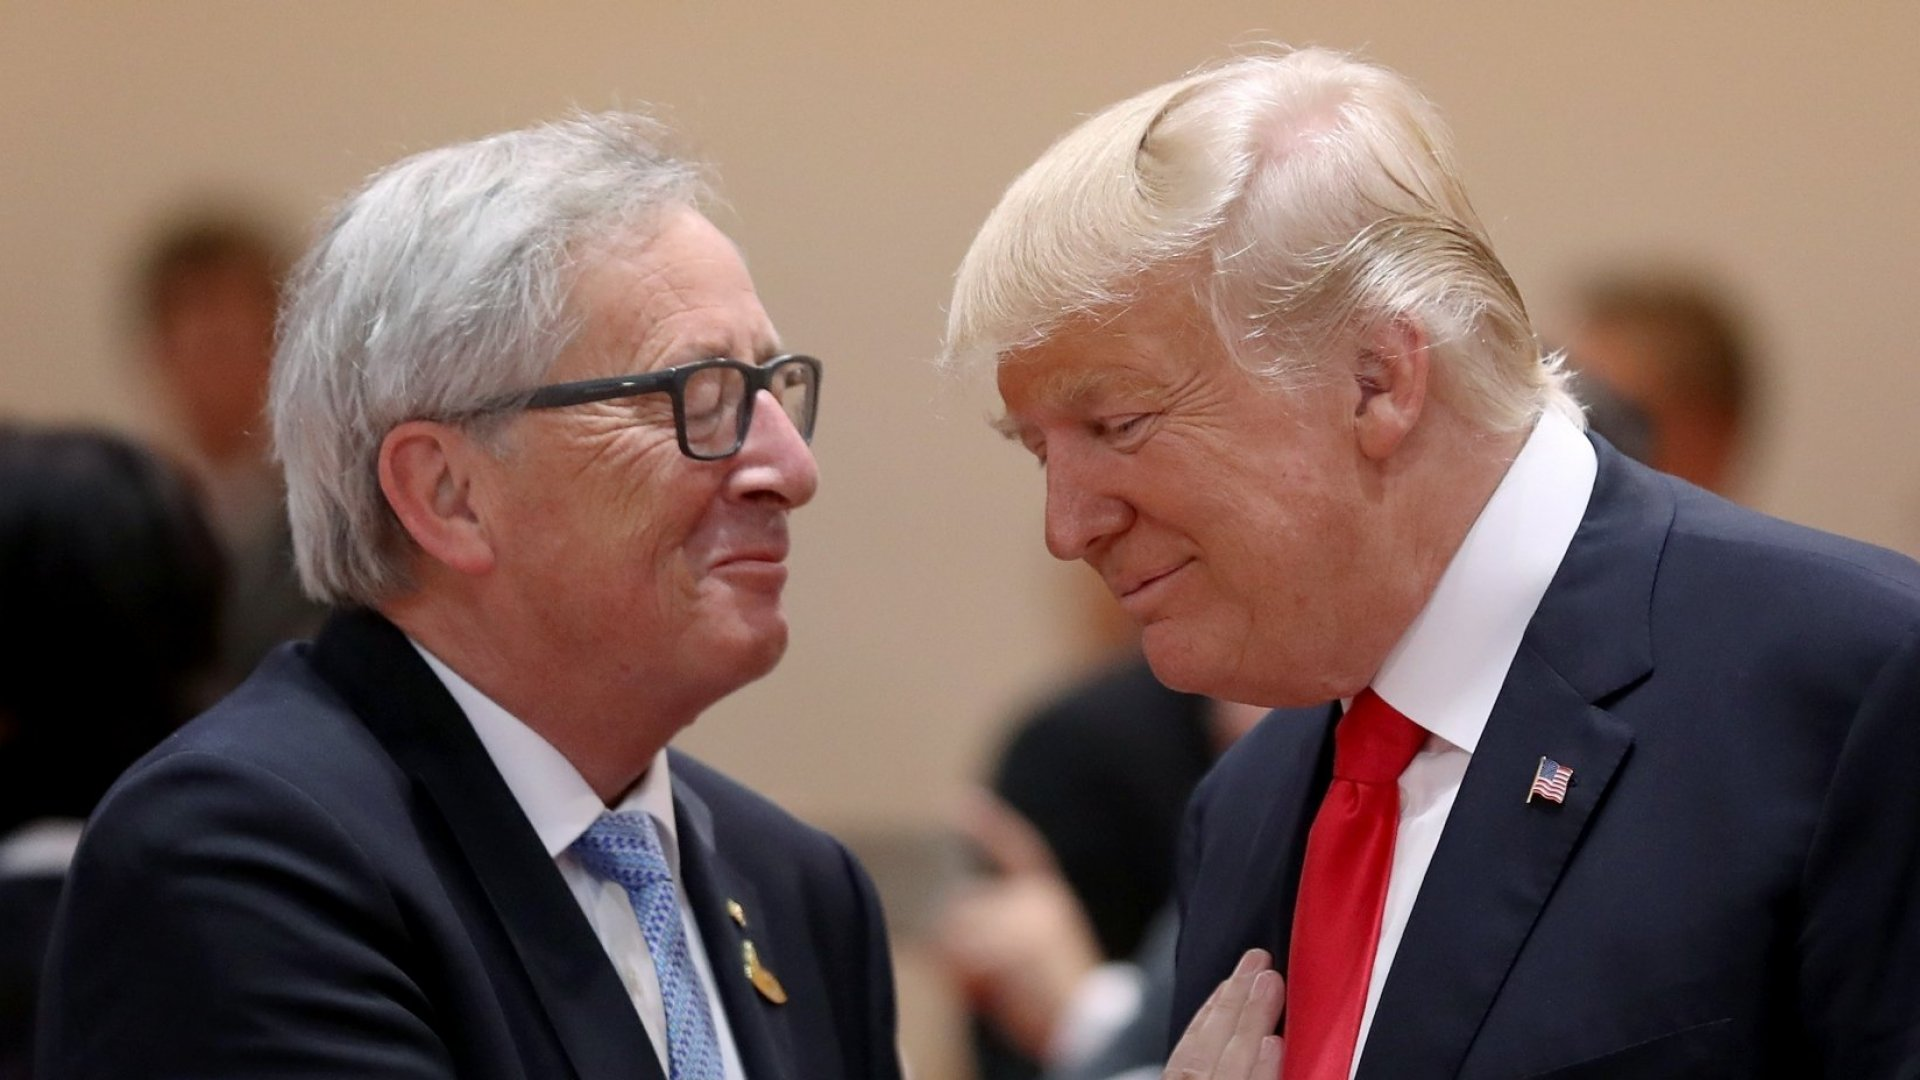 These 3 Genius Lessons in Deal-Making Just Stopped a Trade War